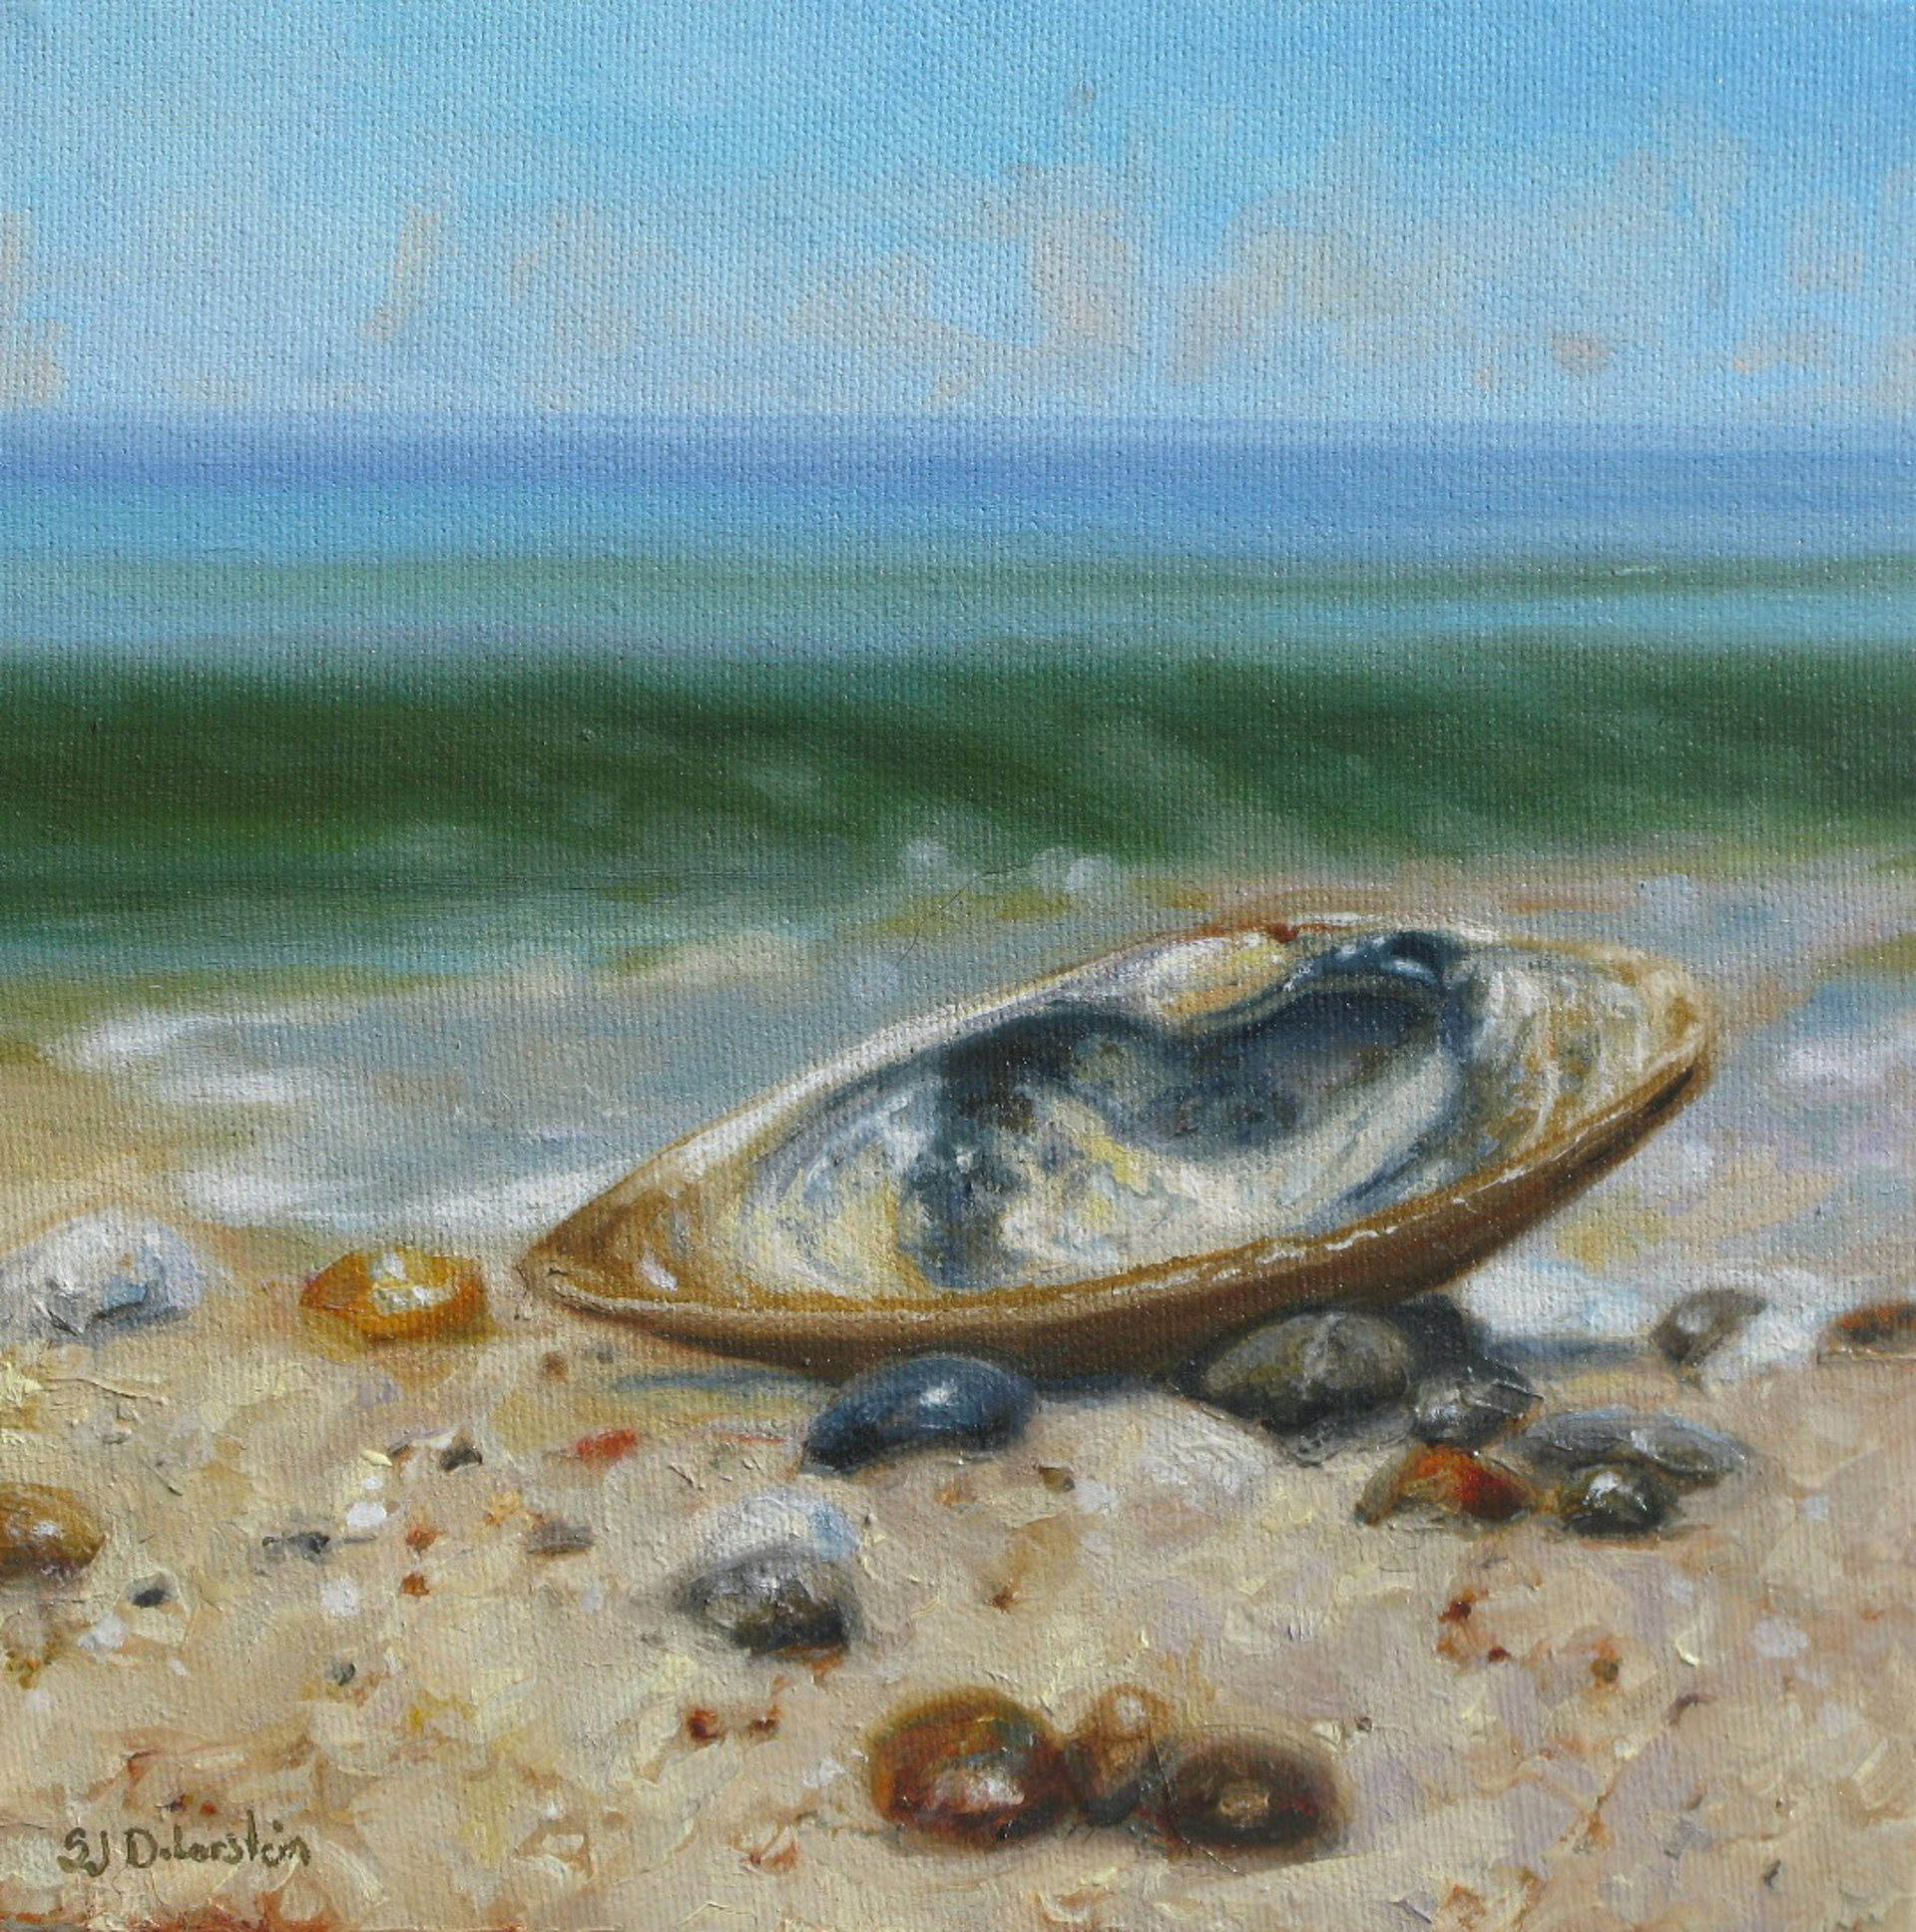 Clamming Up by Sara Jane Doberstein